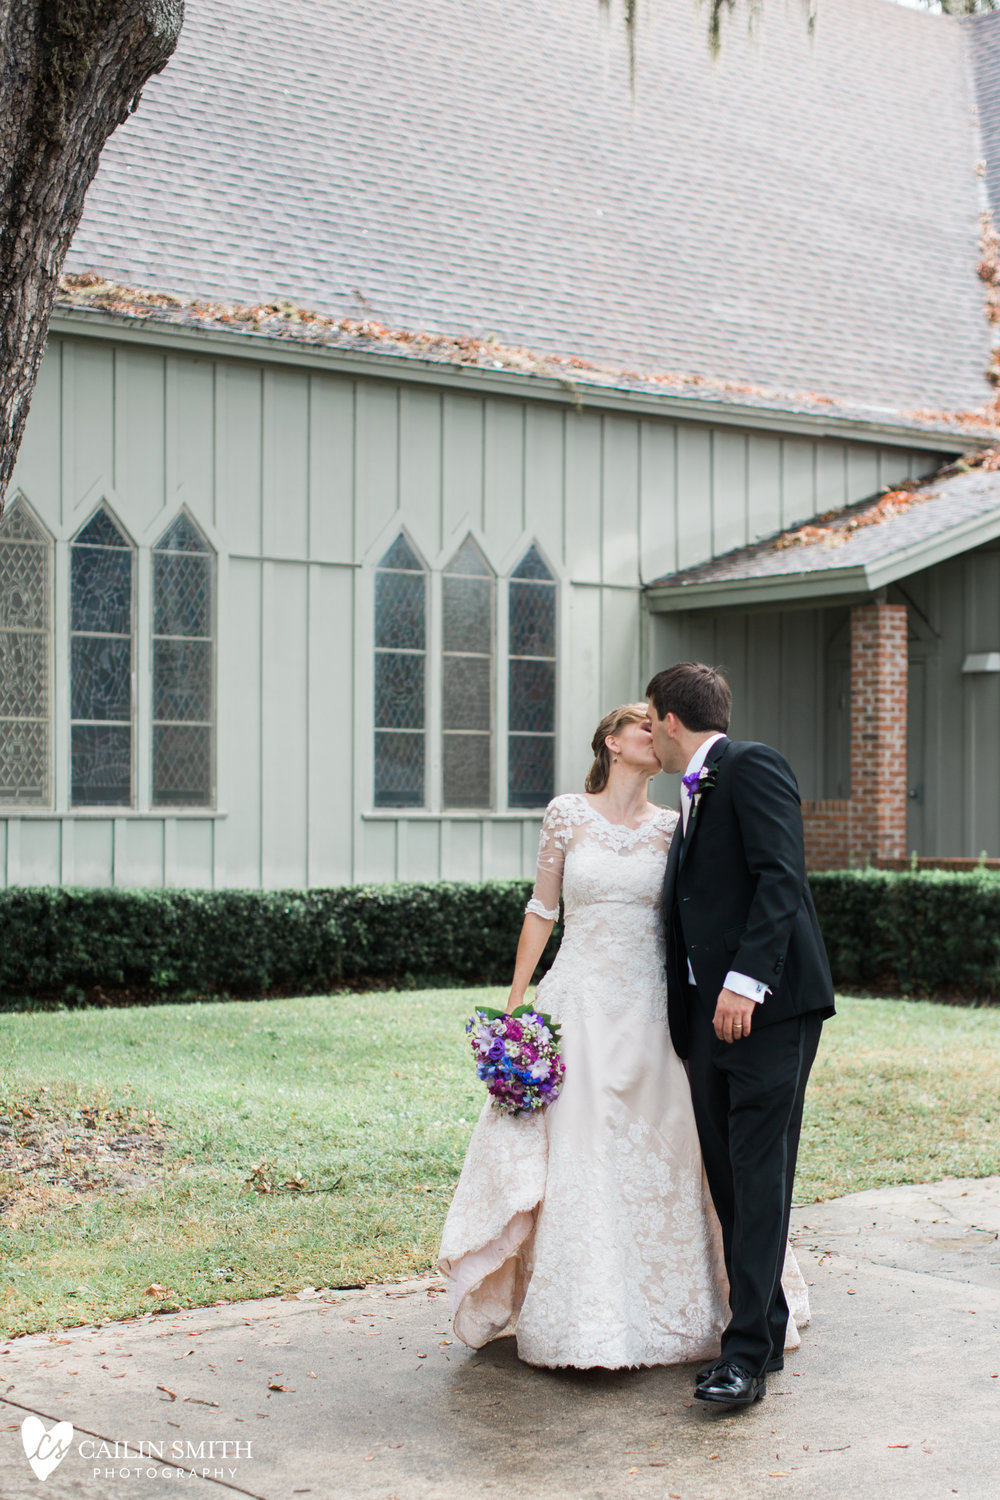 Shannon_David_Grace_Episcopal_Church_Wedding_photography_007.jpg